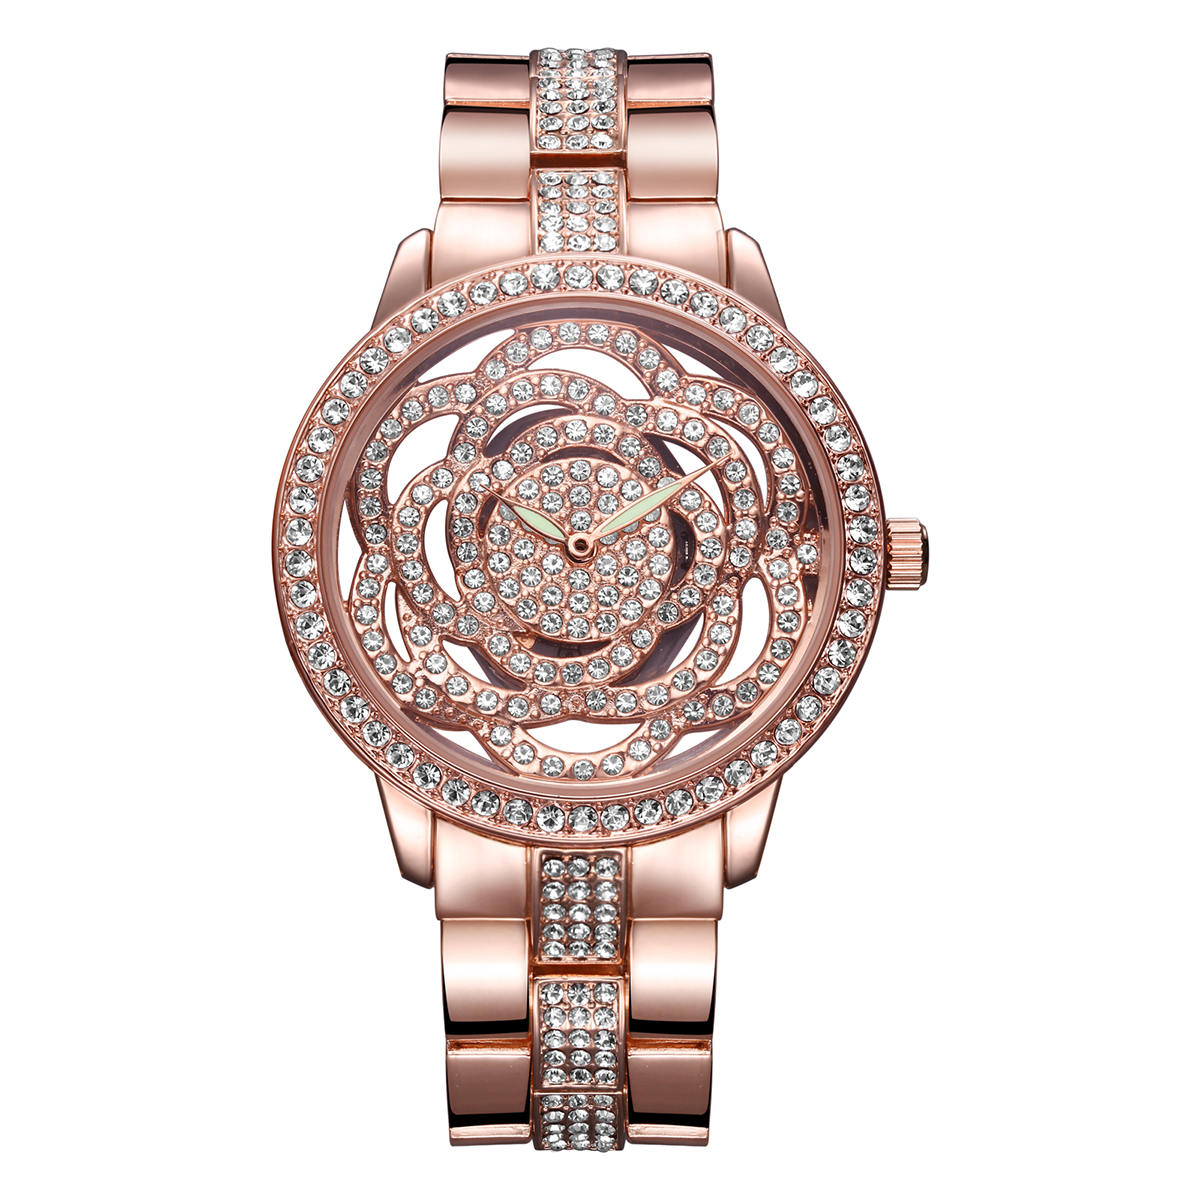 WEIQIN Women Watches Luxury Rose Gold Watch Woman Diamond Full Stainless Steel Lady Watches Fashion Dress Watch Relogio Feminino купить